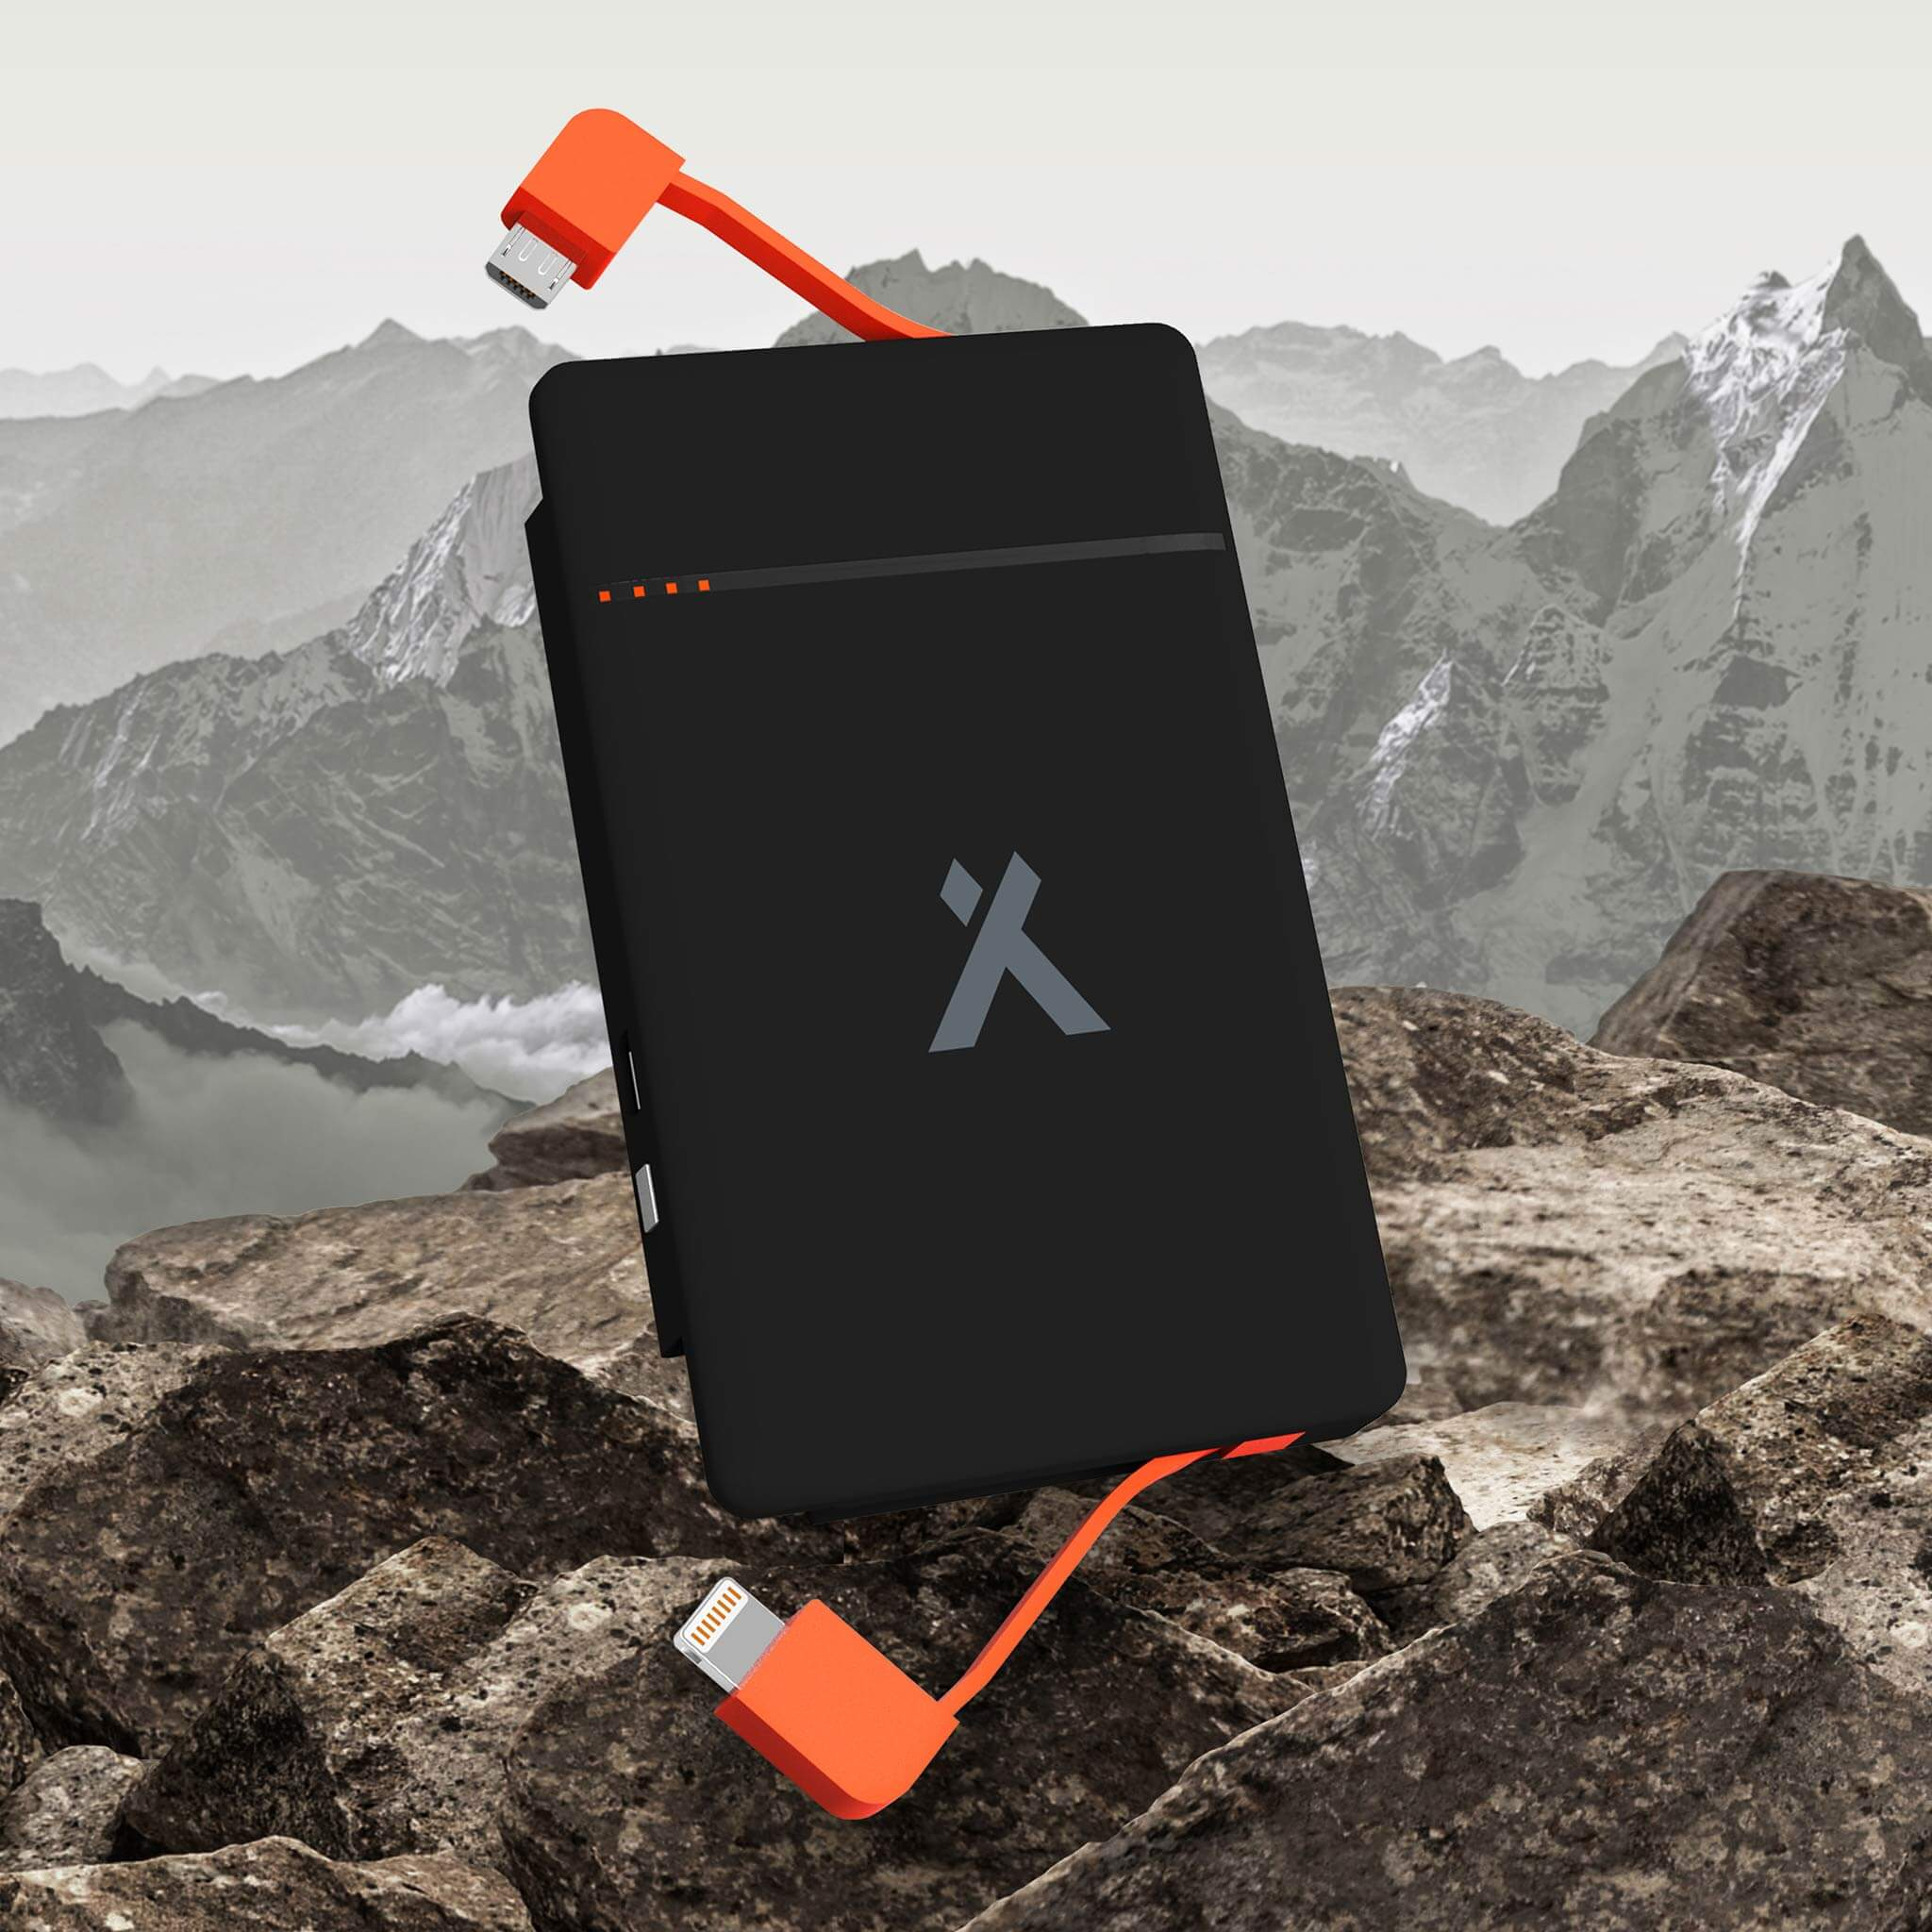 Inbuilt cables on the Bear Grylls Power Bank